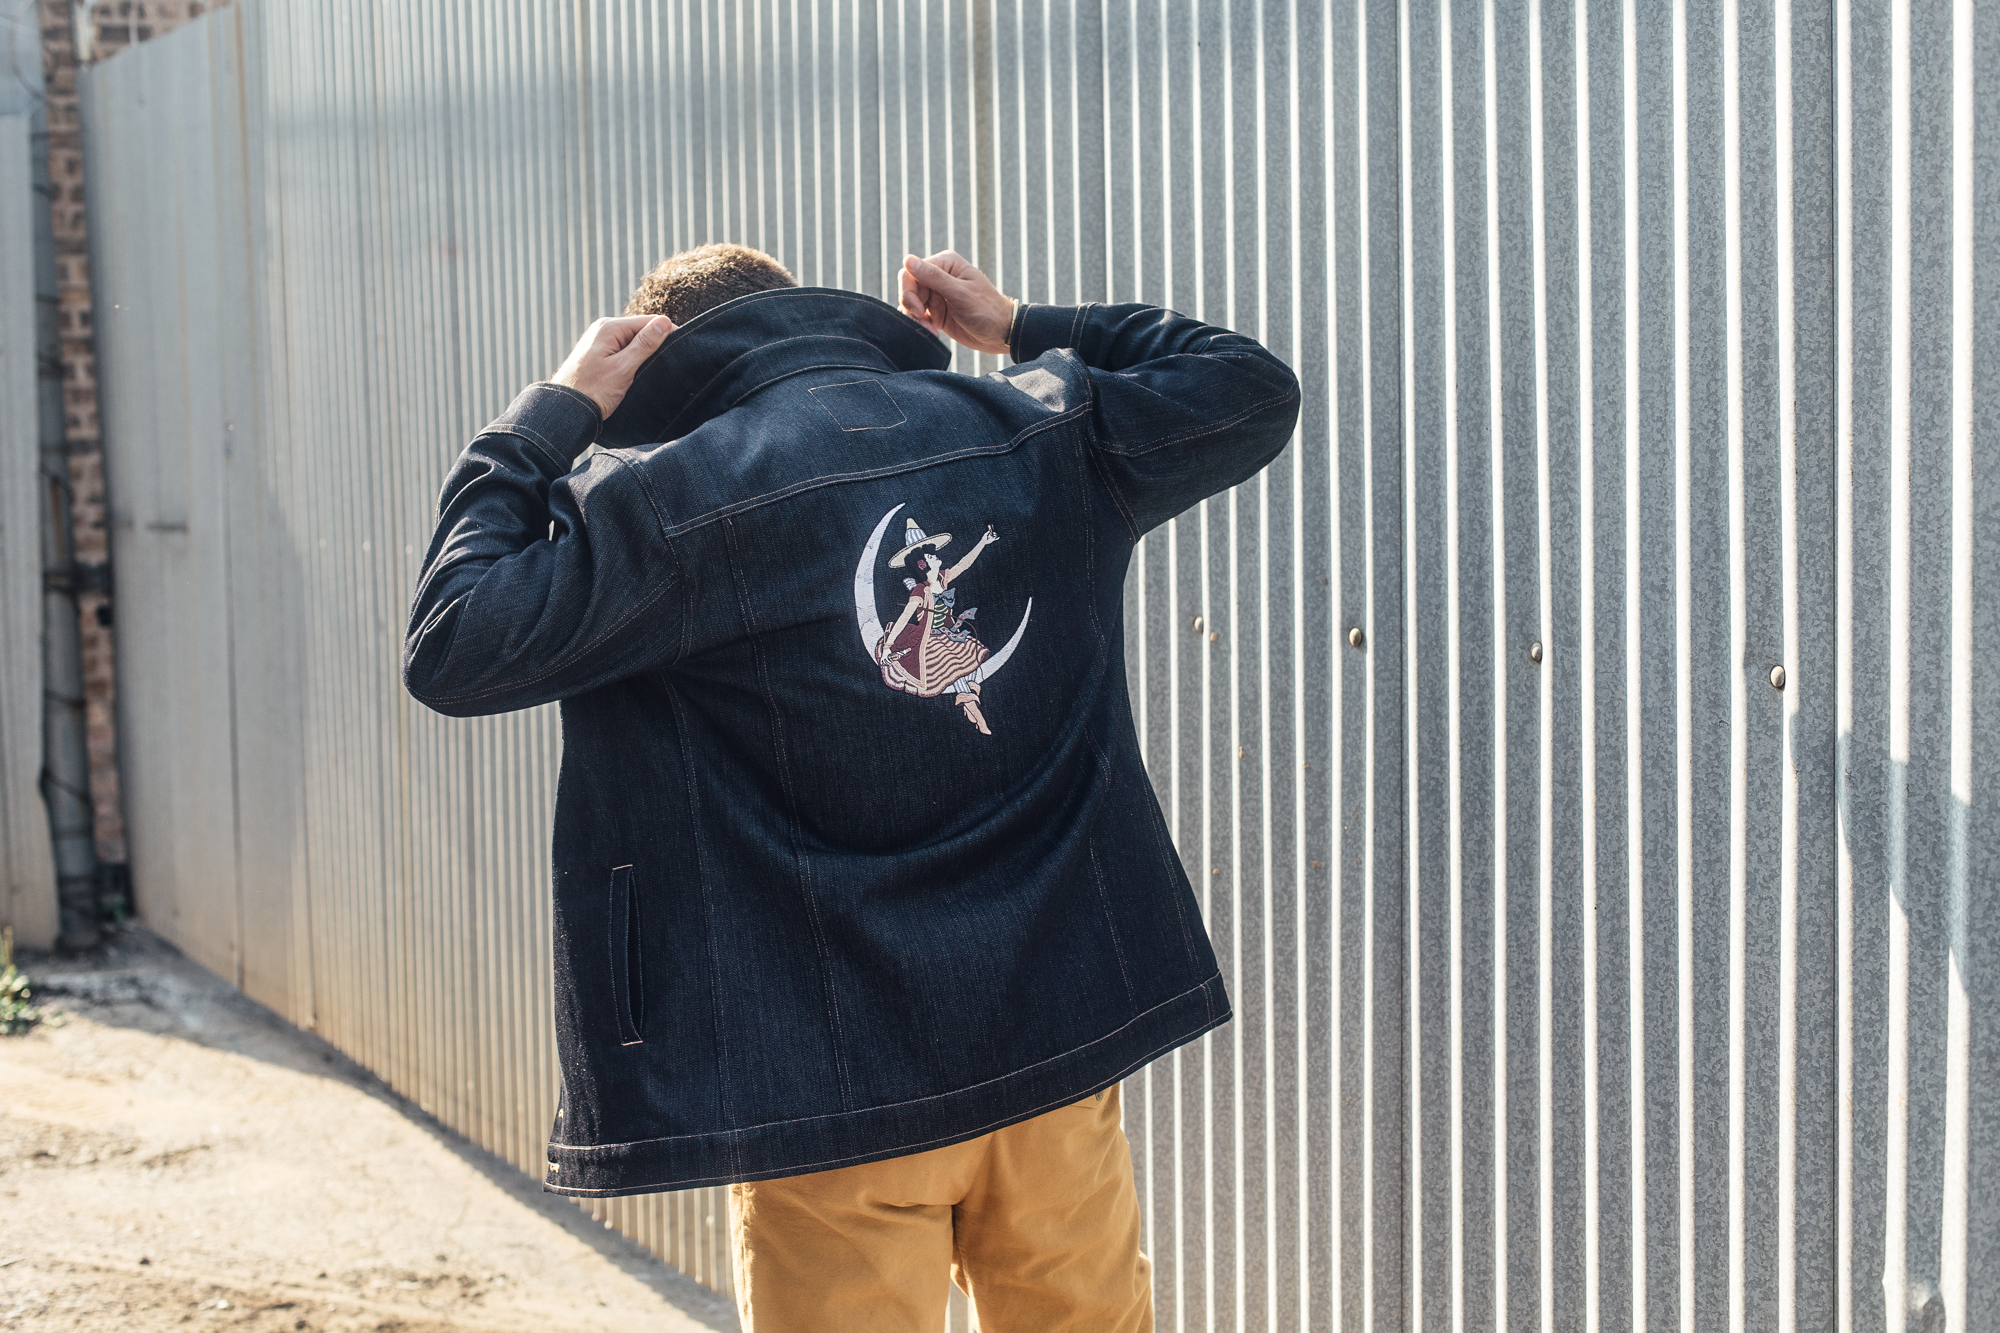 Miller High Life x Stock Mfg High Life Heritage Collection - Long Haul Jacket Custom Embroidery